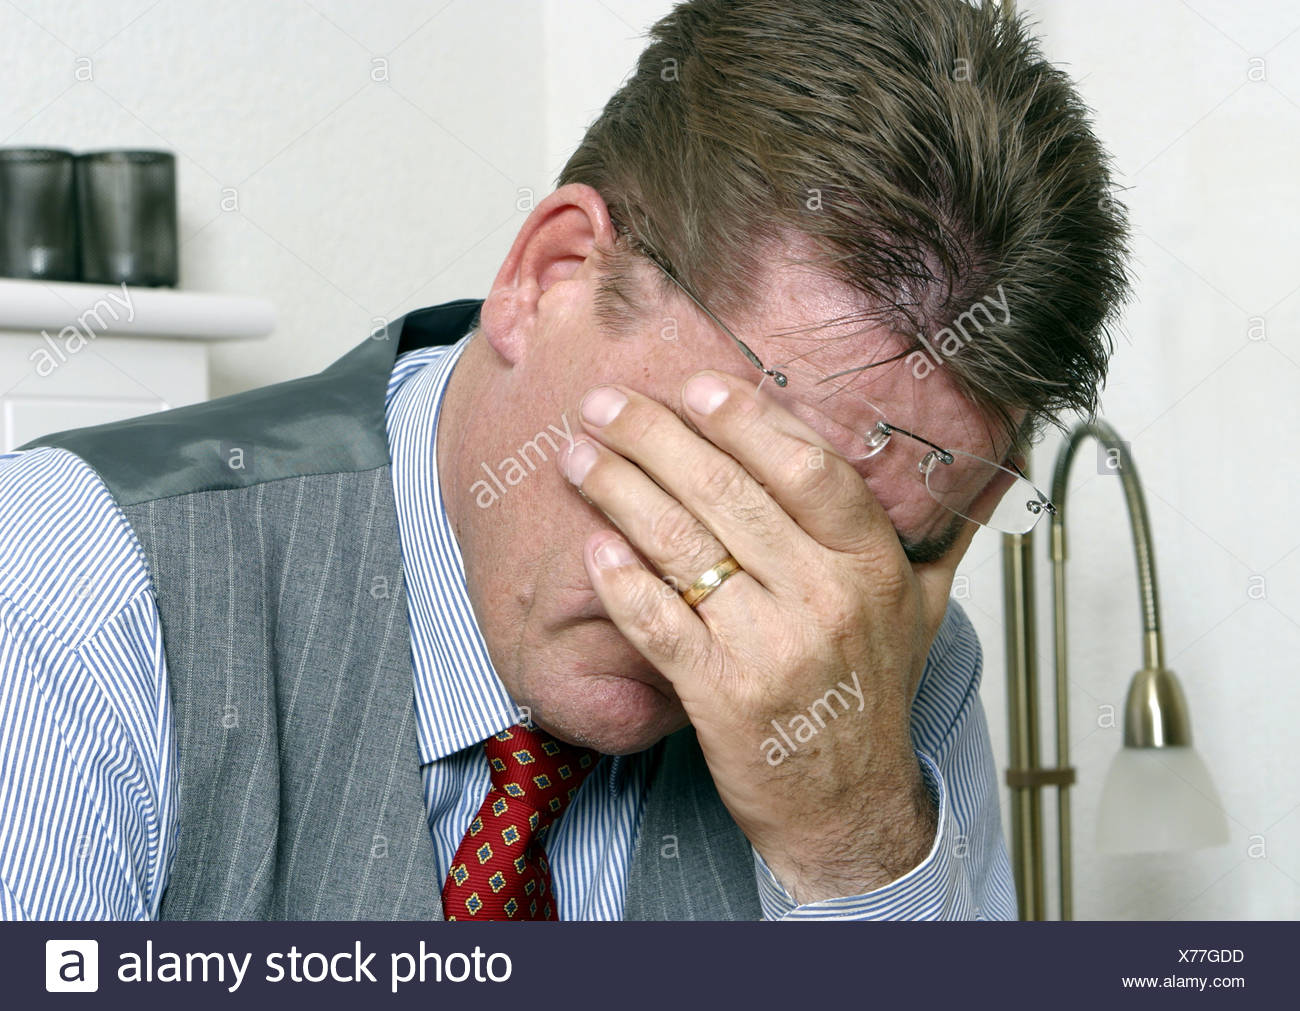 Depressed middle aged man overworked hand covering face - Stock Image